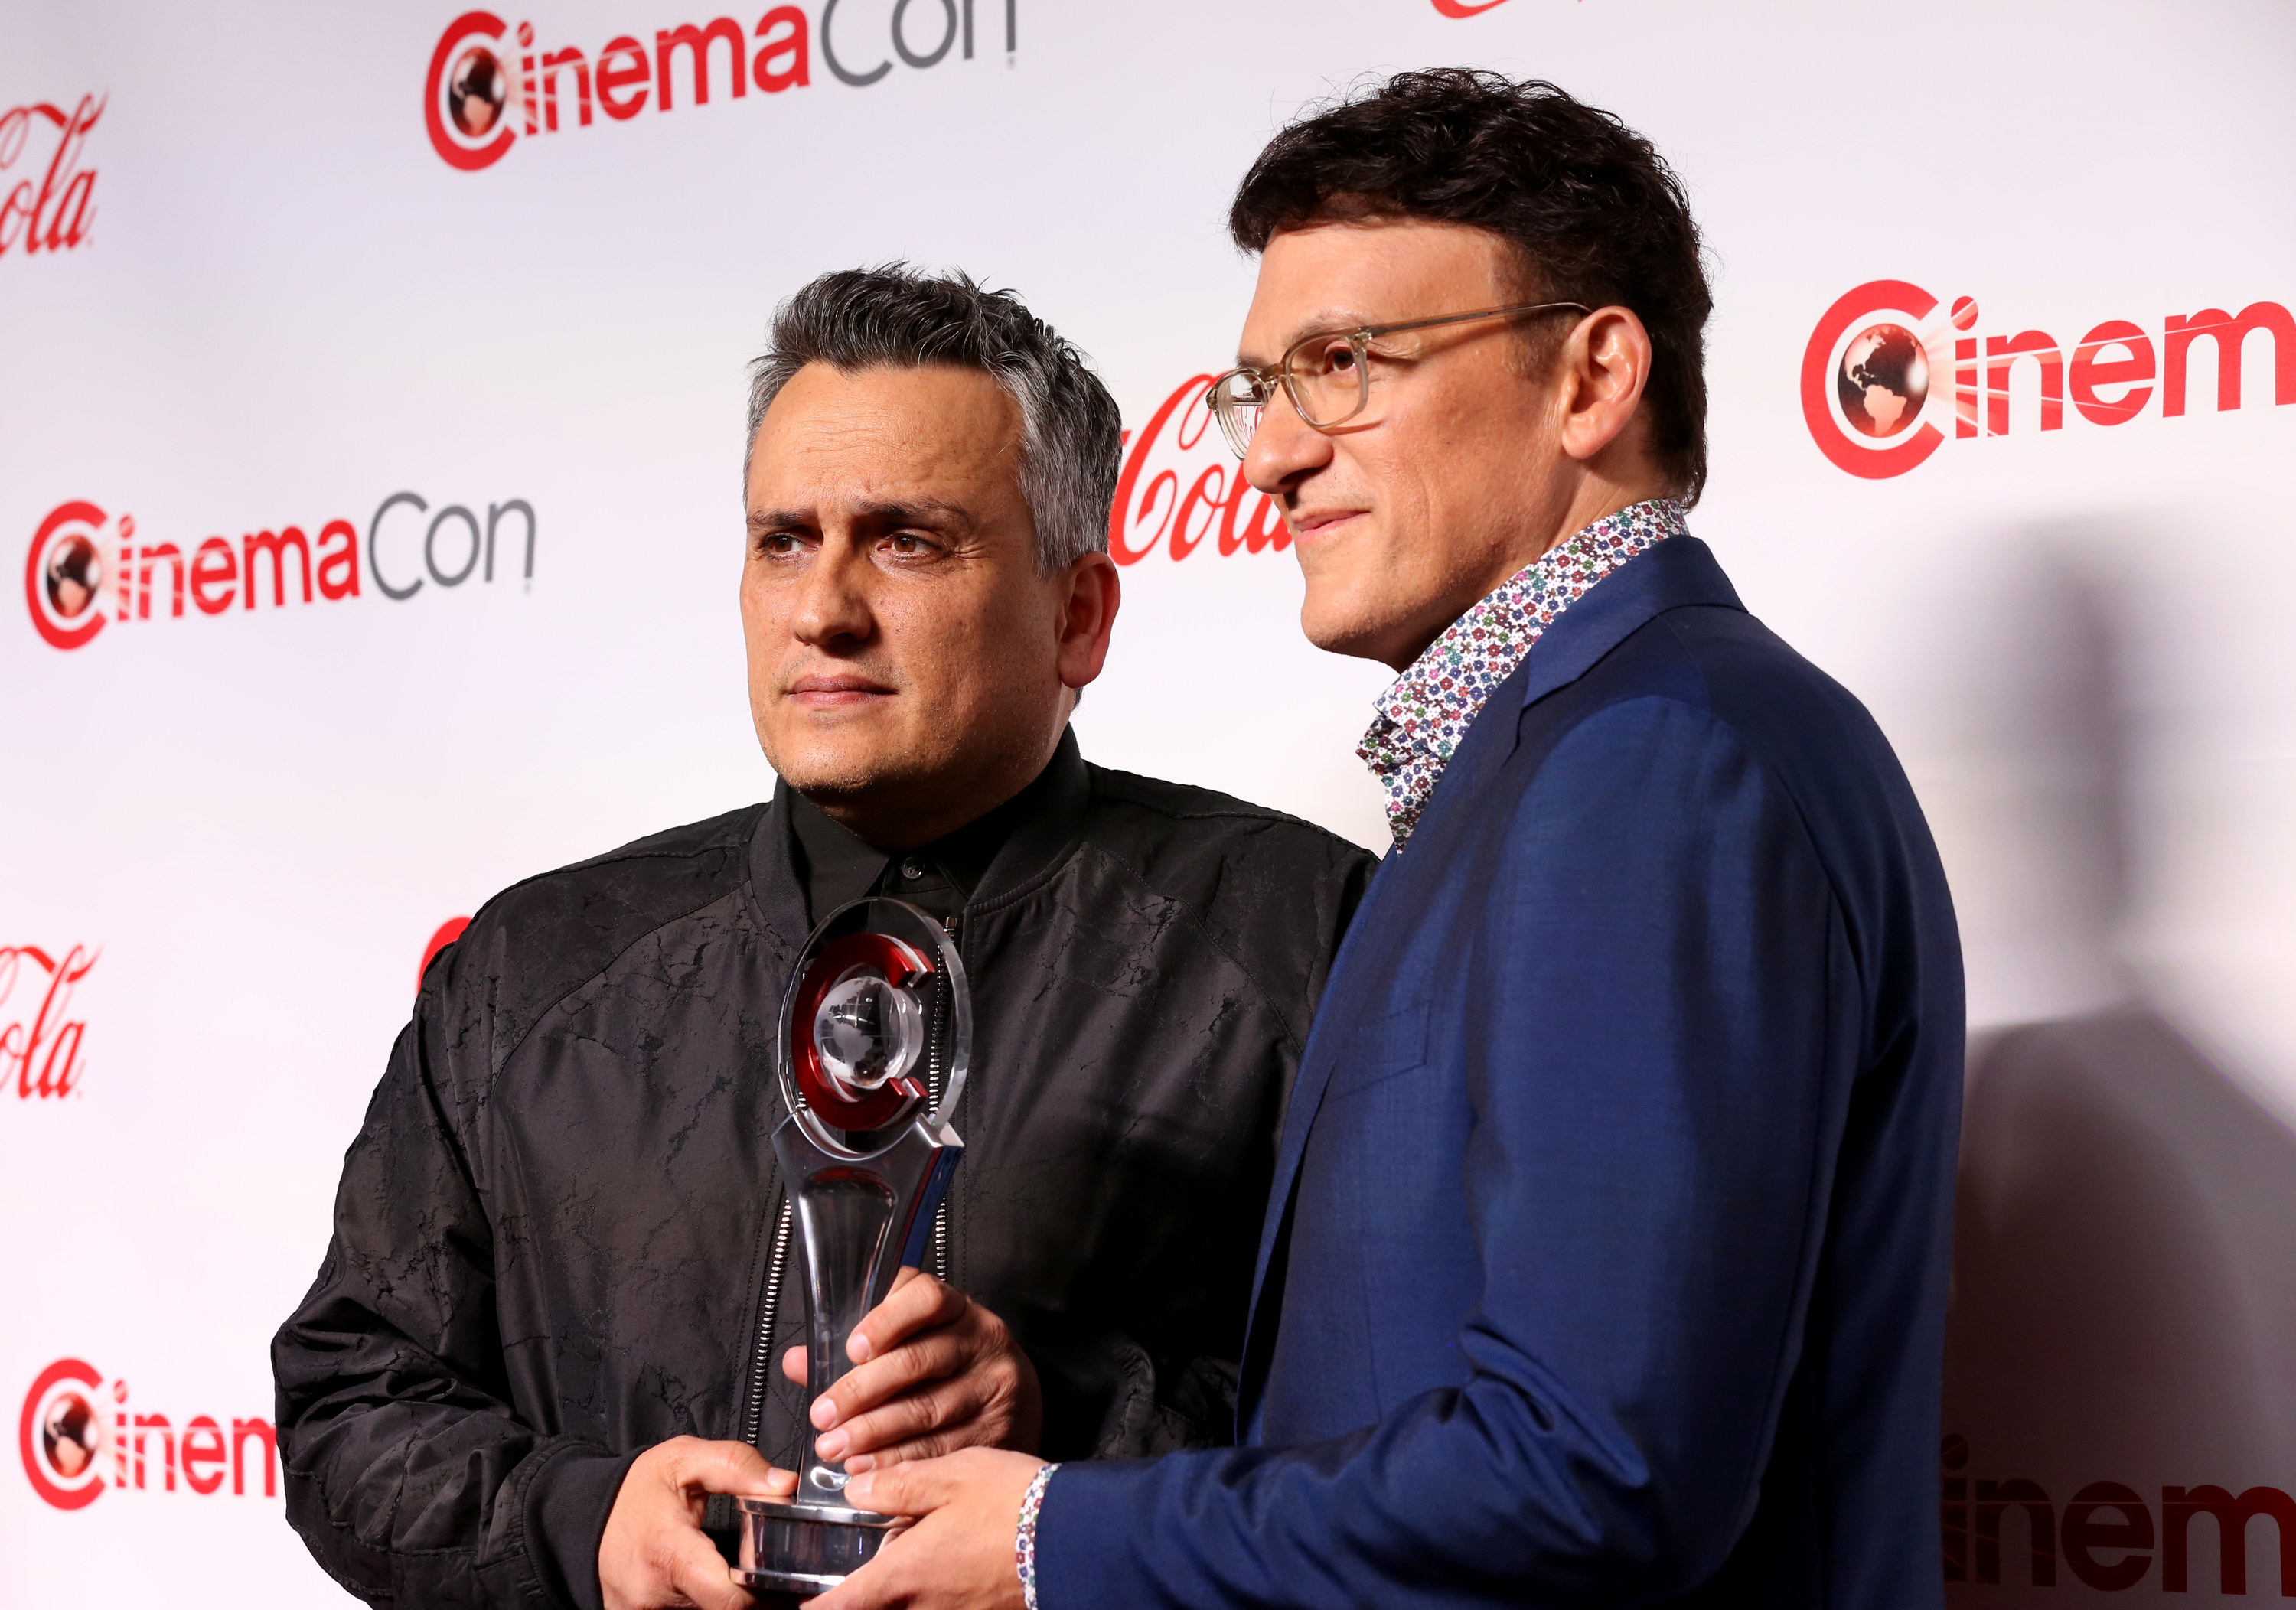 Joe and Anthony Russo receiving an award